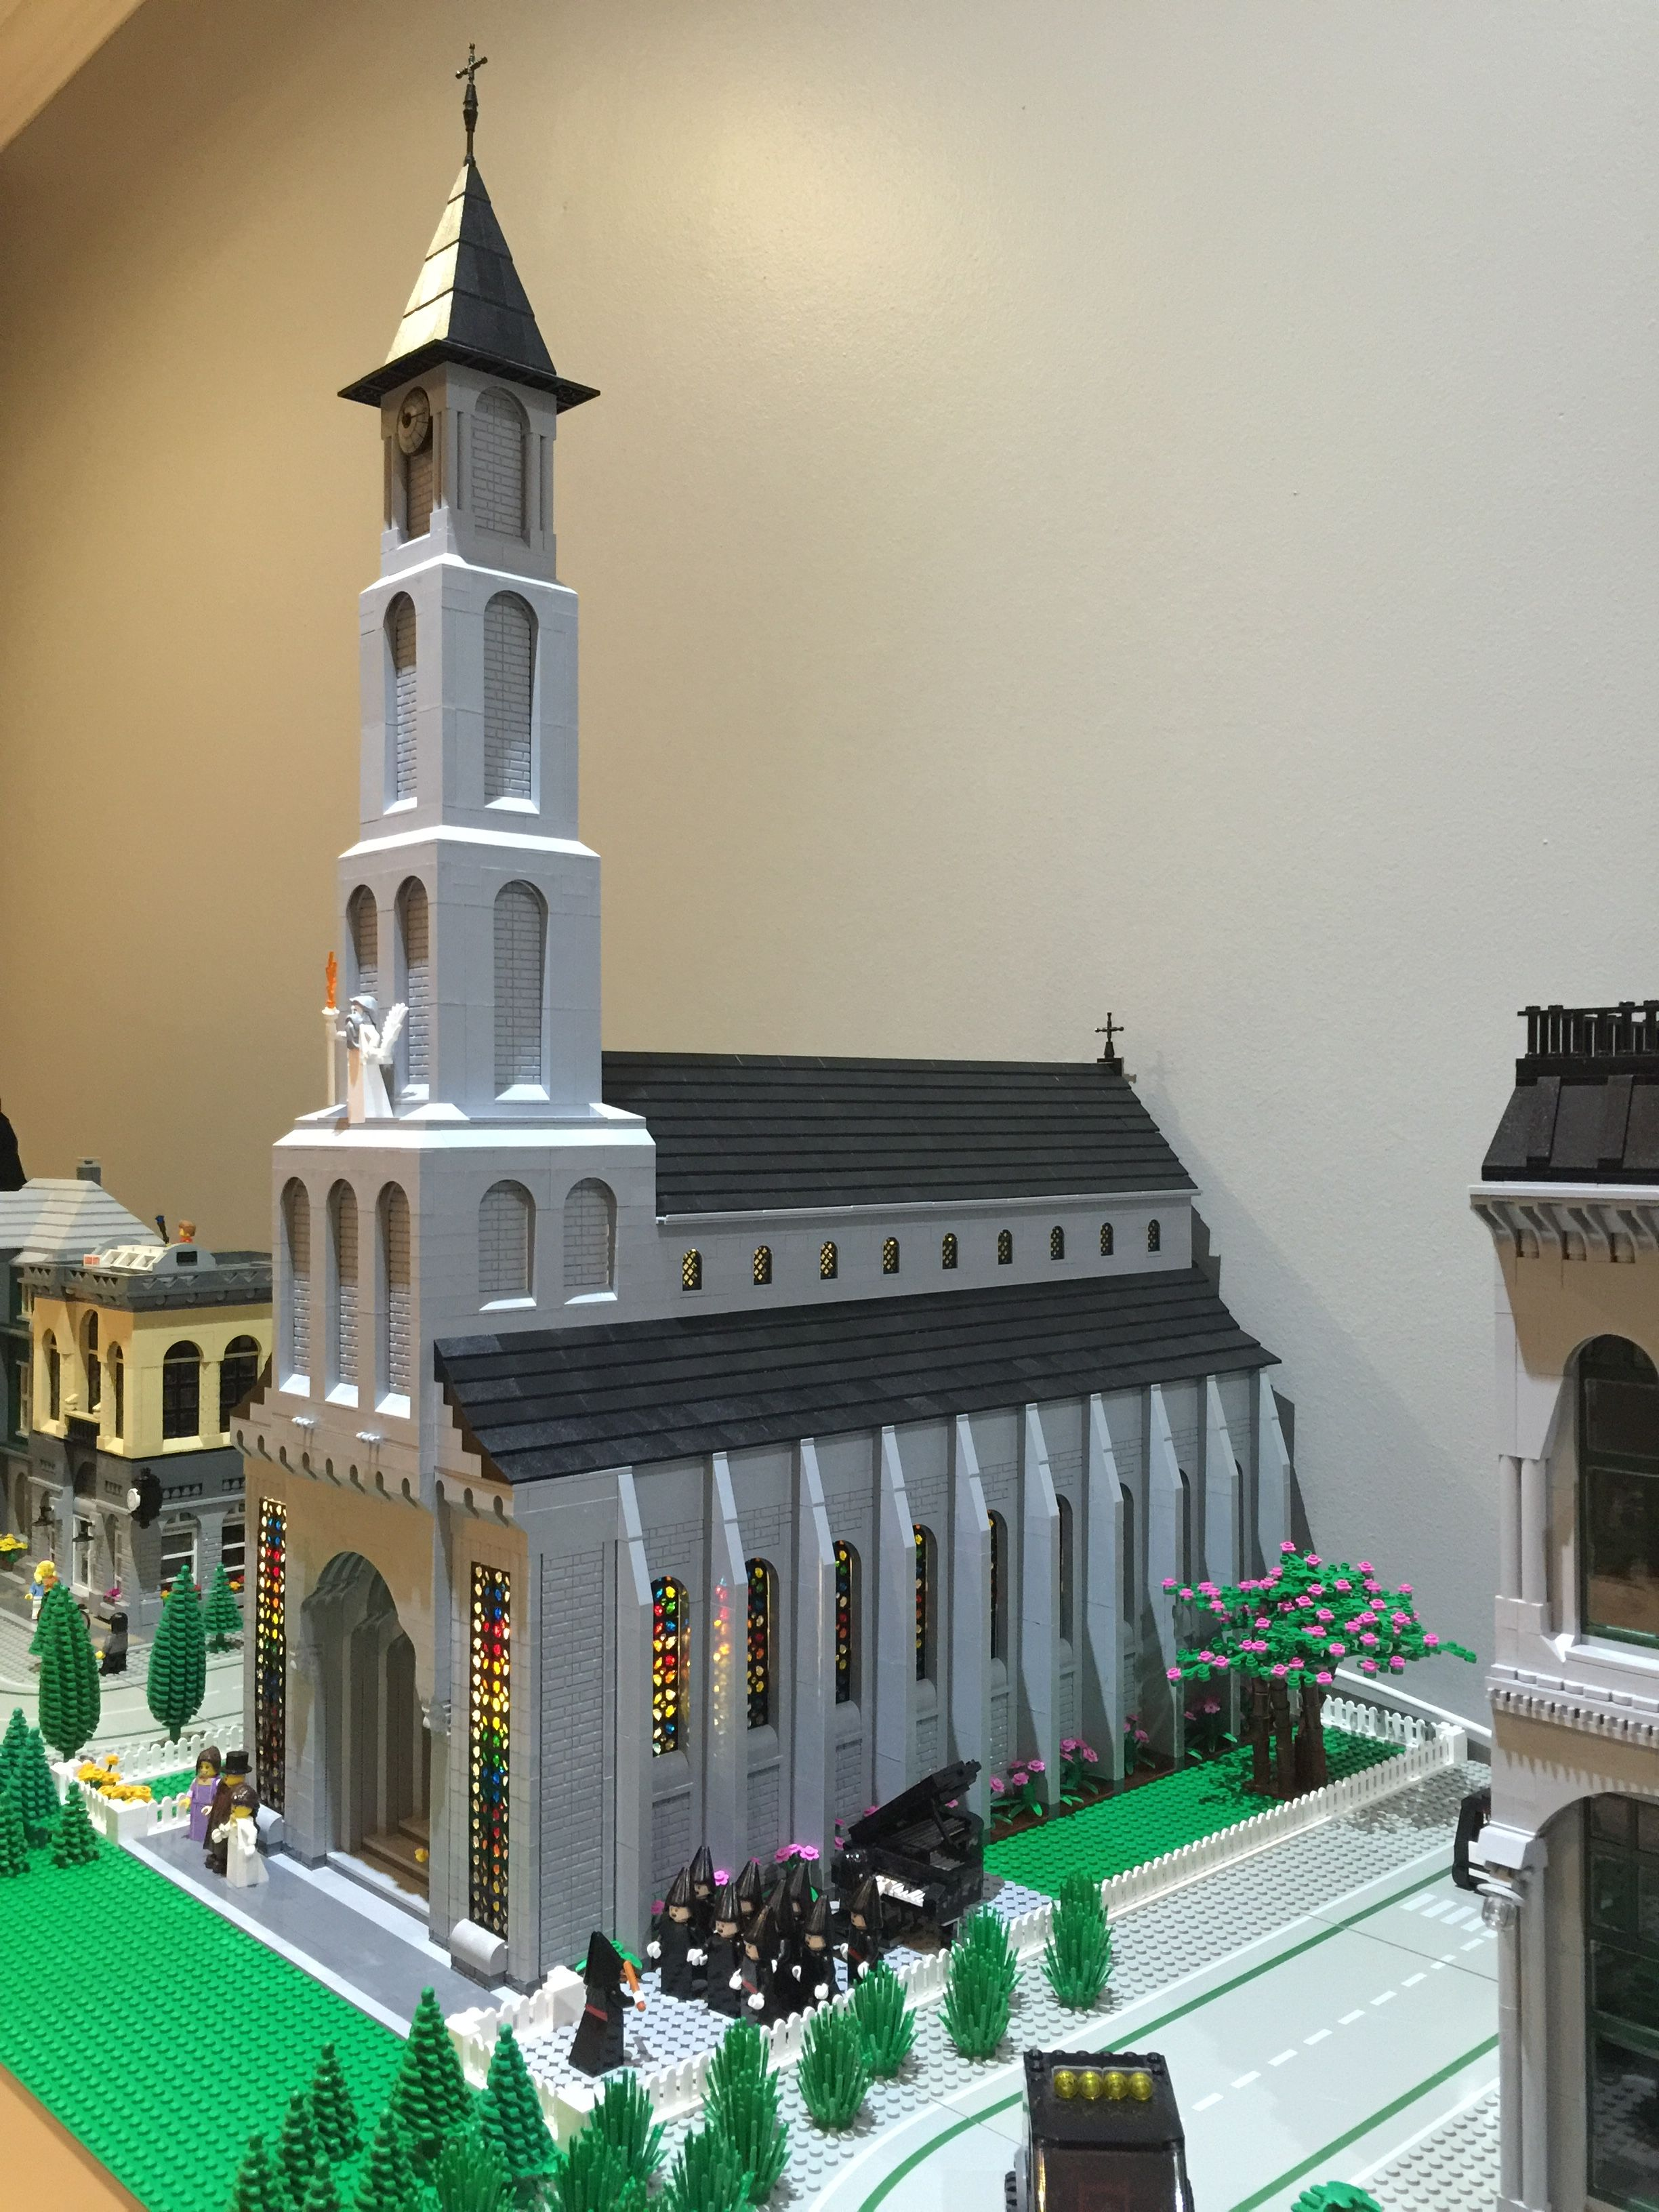 Lego Church With Stained Glass Windows And Choir Lego House Lego Architecture Lego Worlds